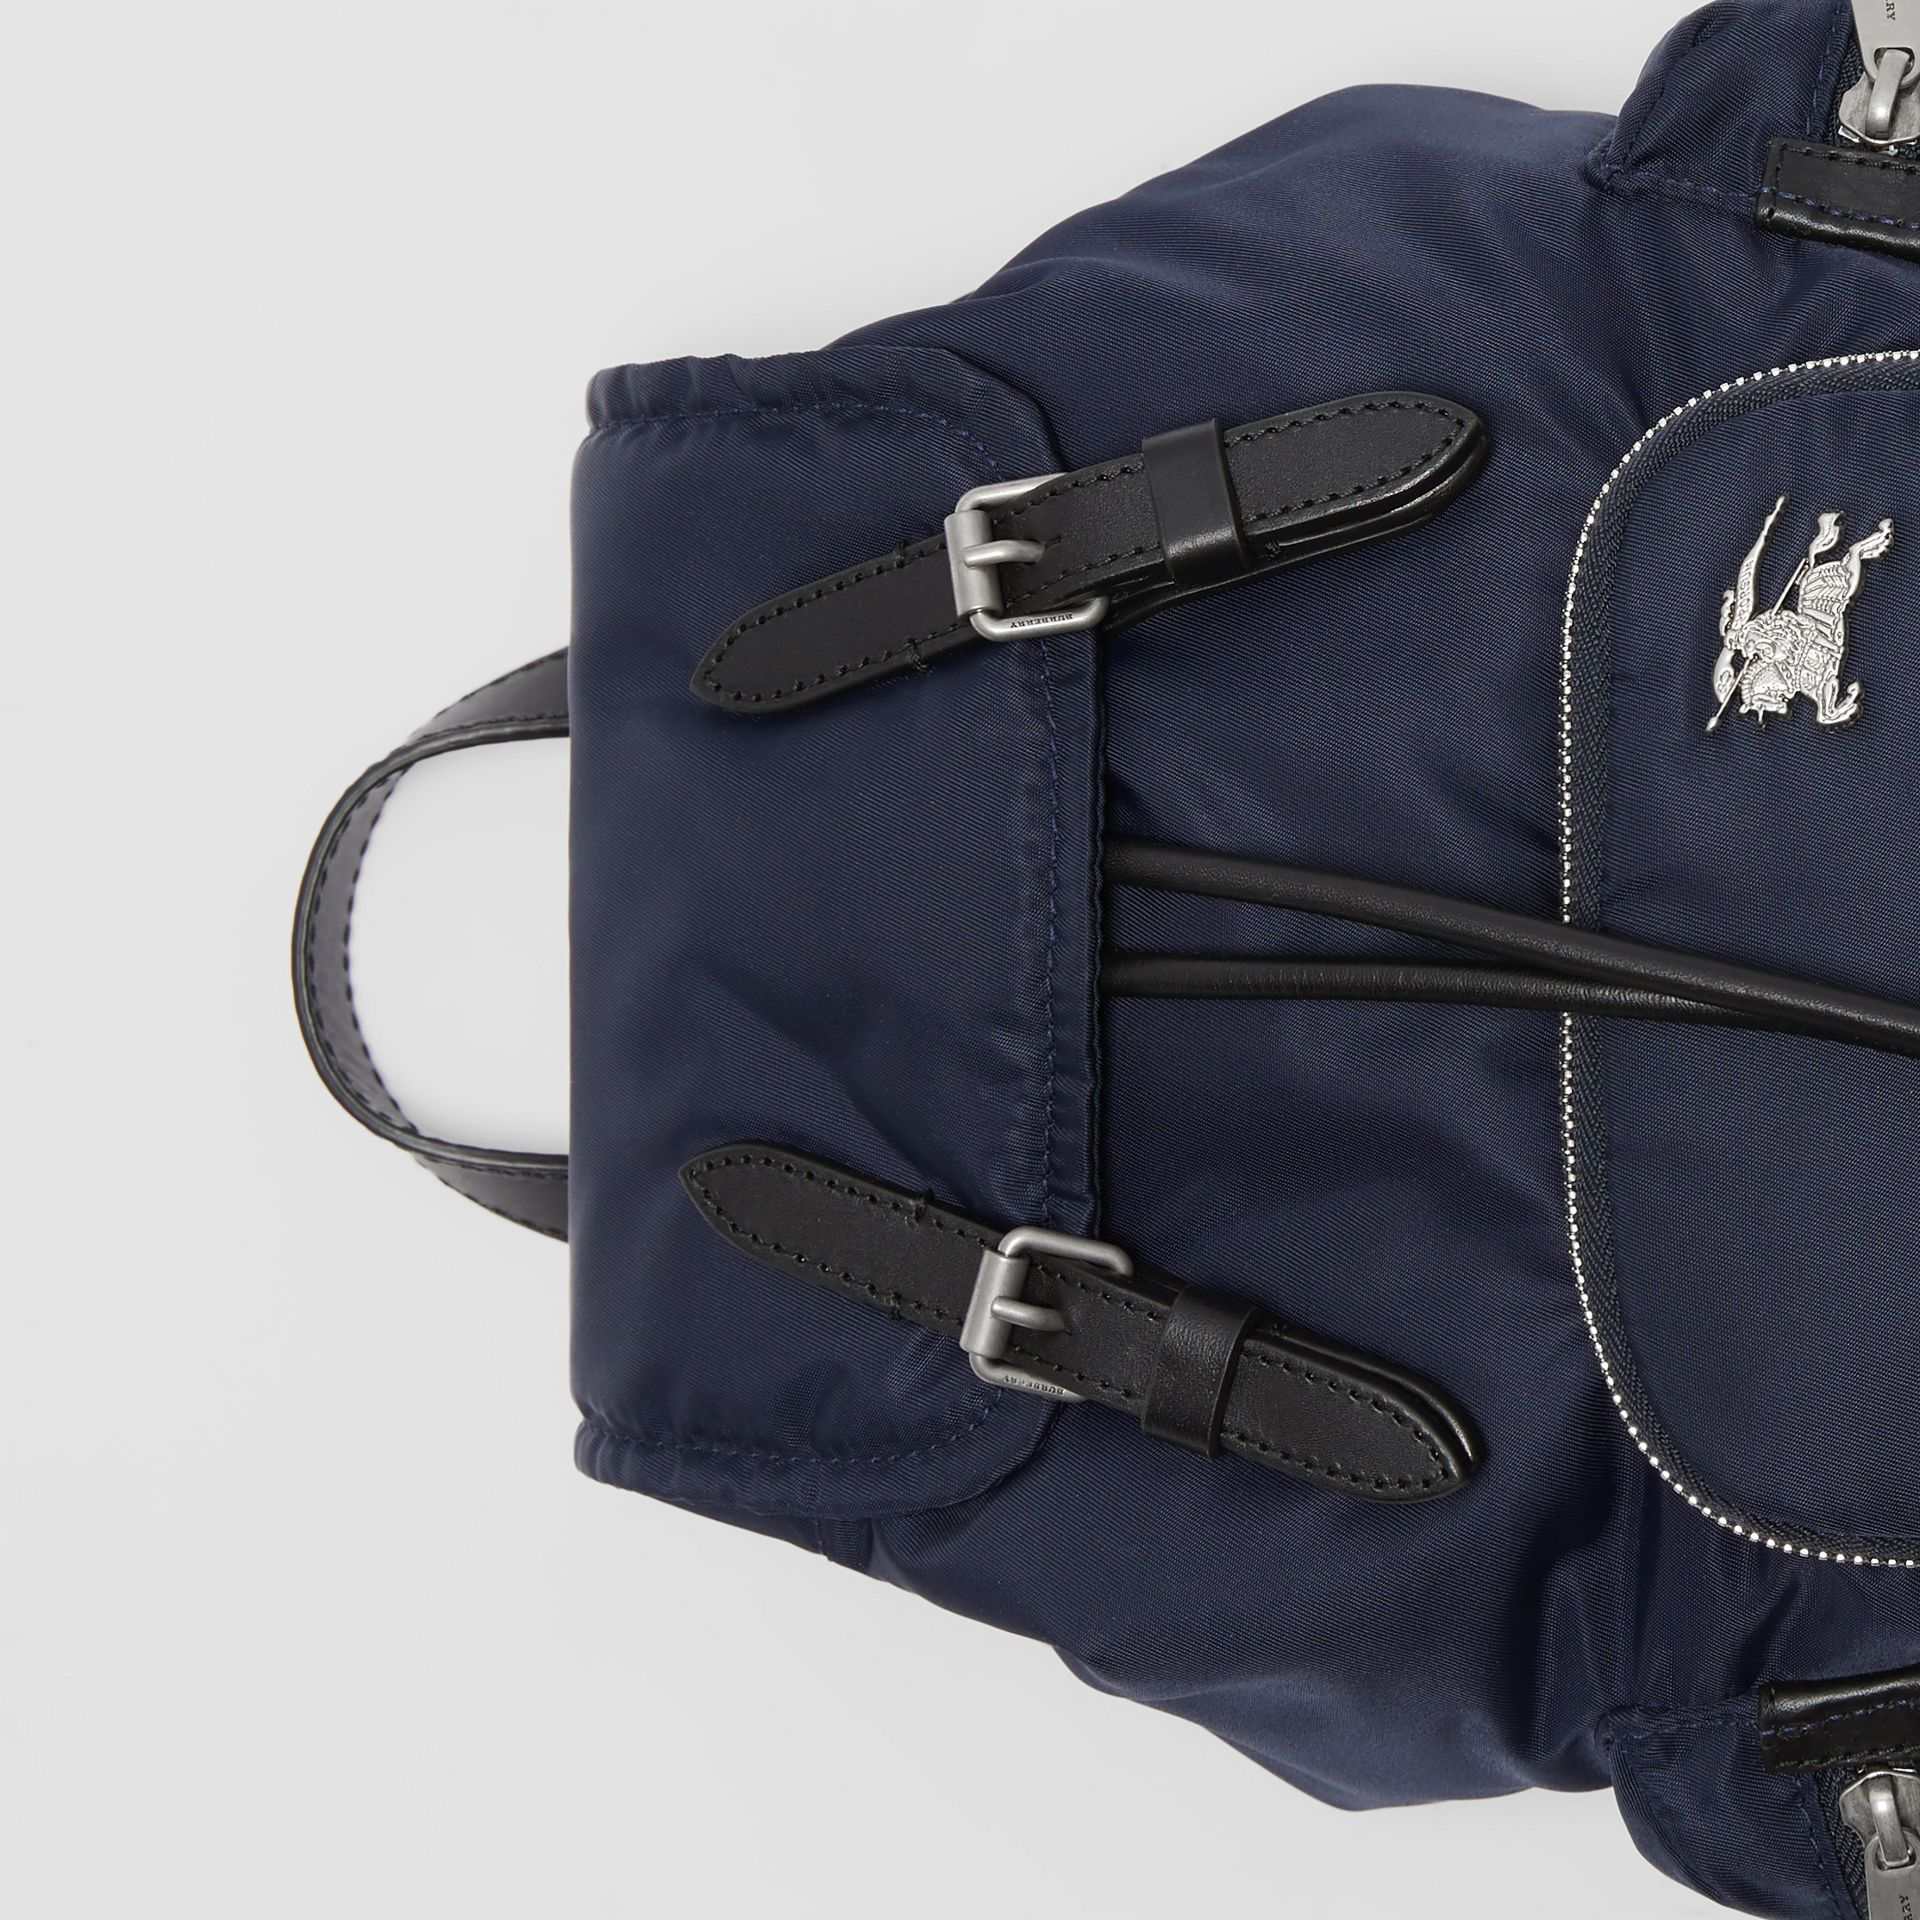 The Small Crossbody Rucksack in Puffer Nylon in Ink Blue - Women | Burberry - gallery image 1